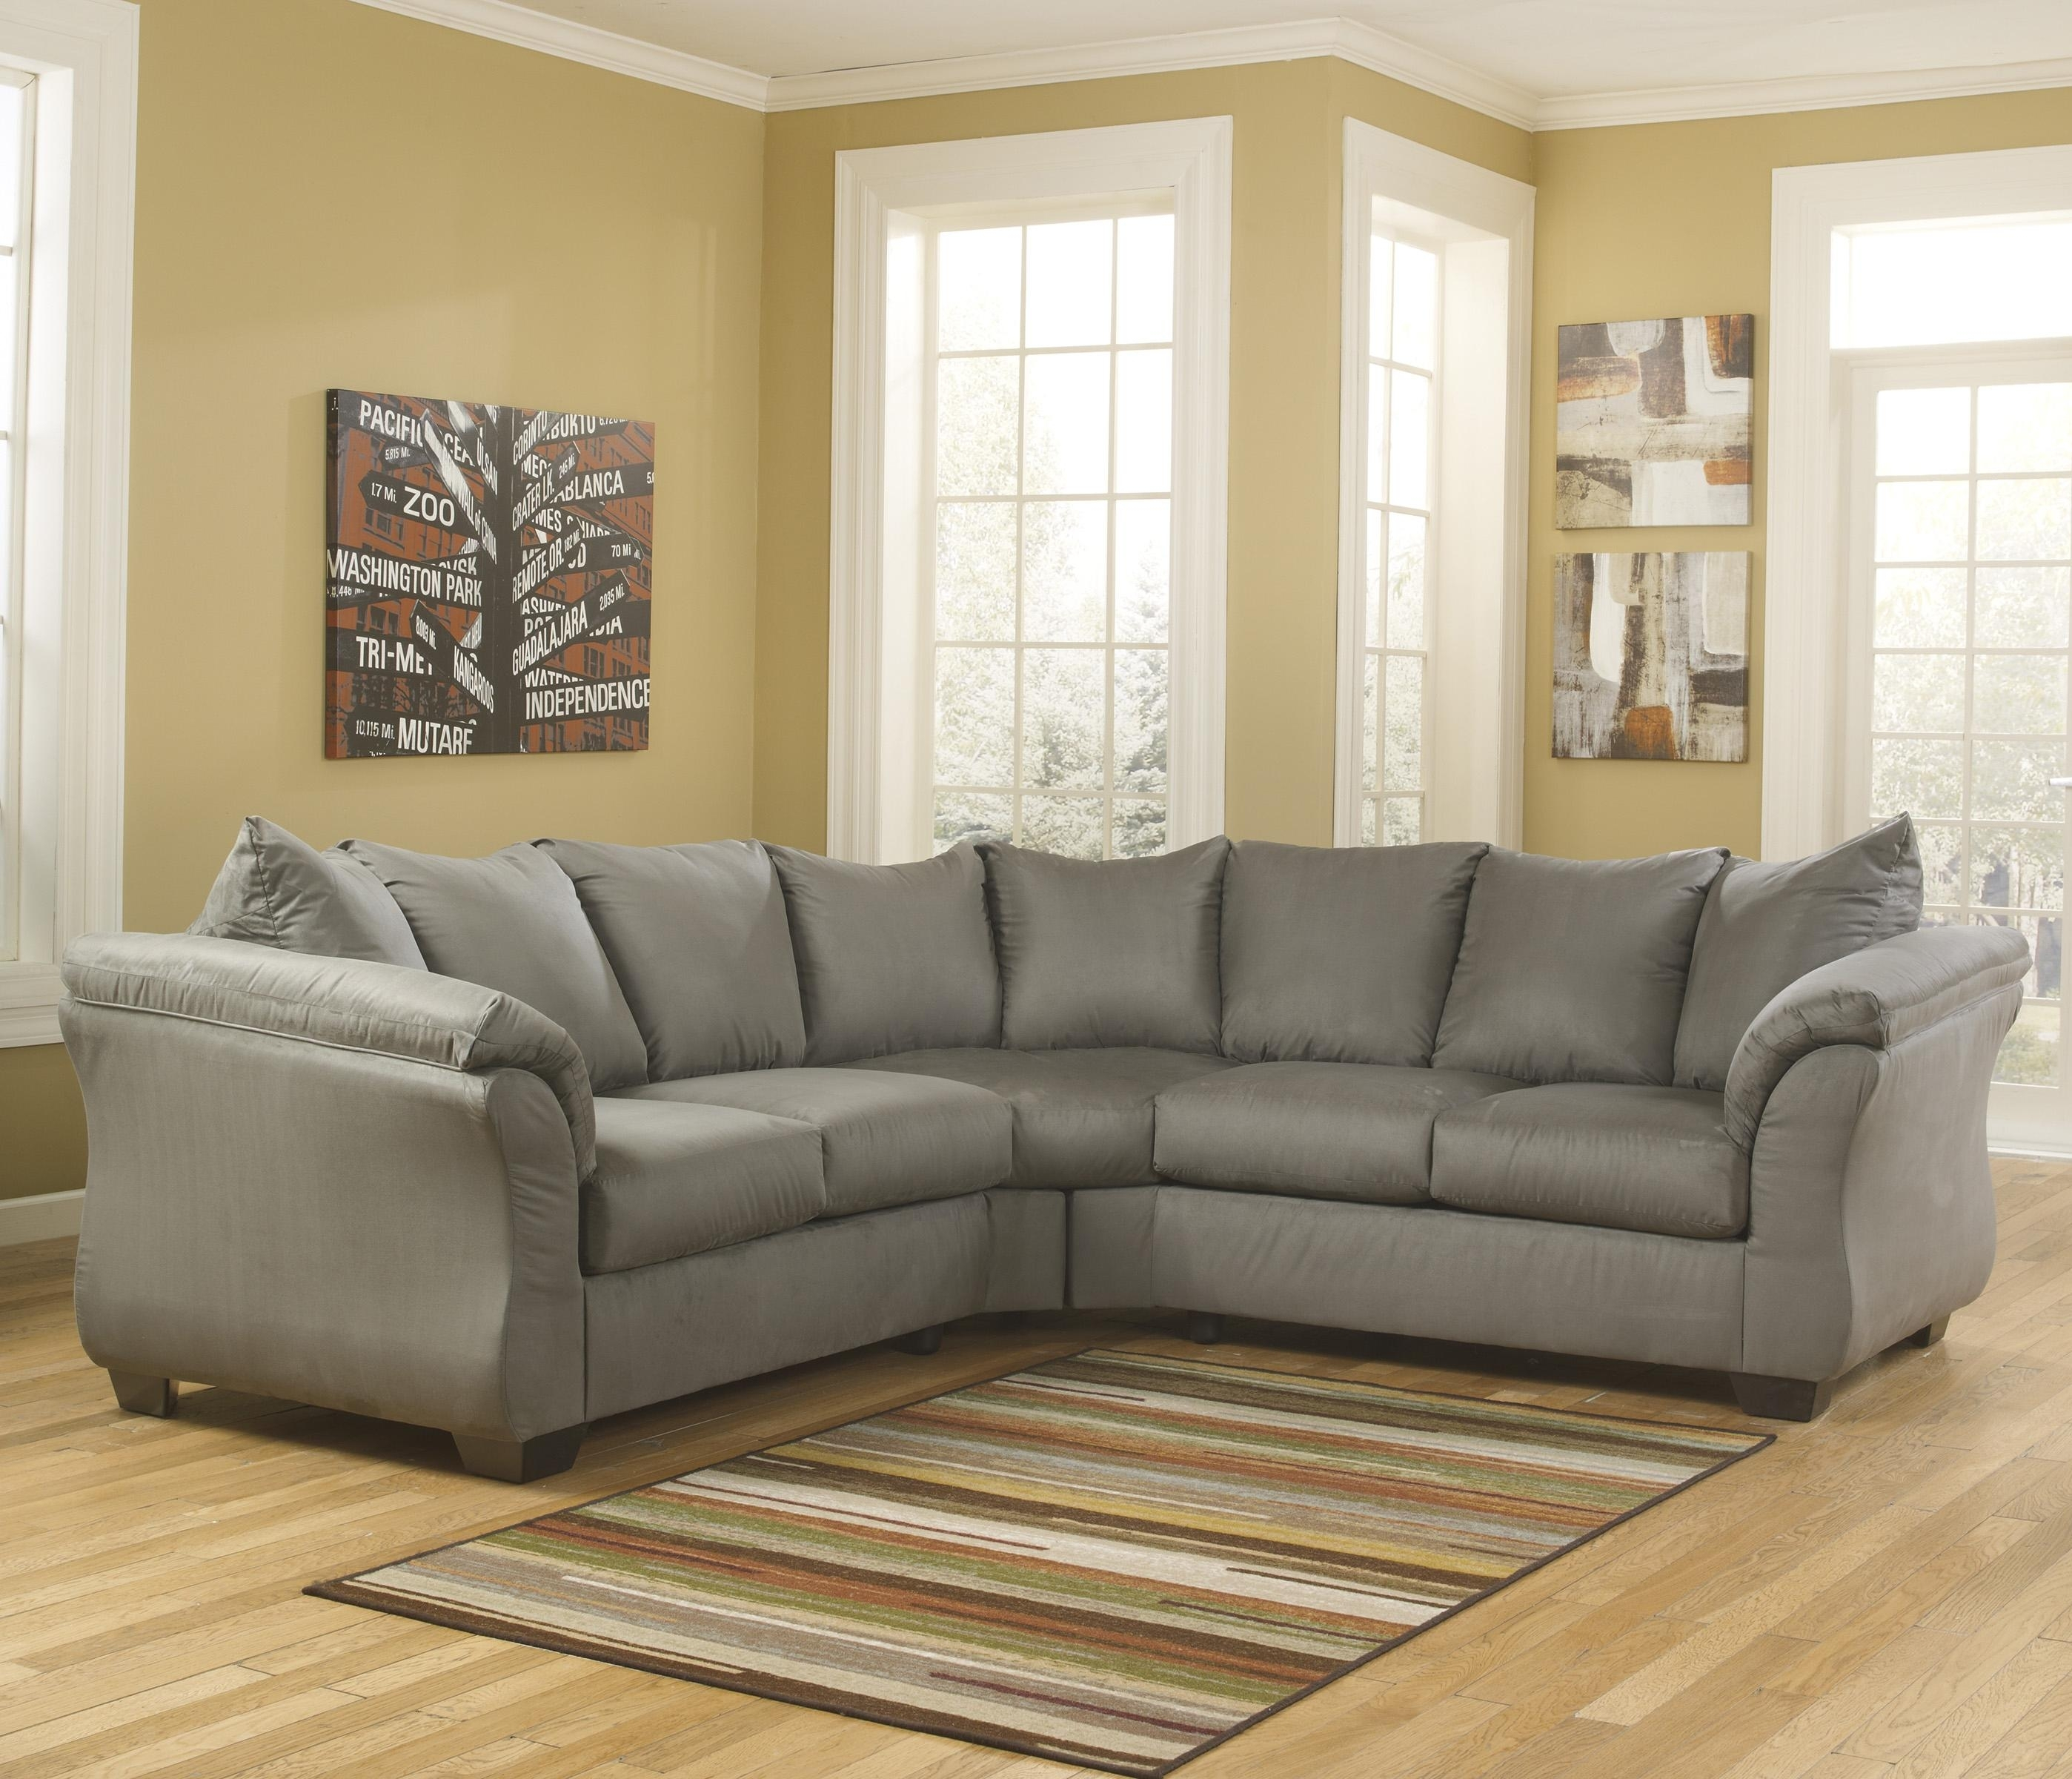 Darcy – Cobblestone Sectional Sofasignature Designashley Intended For Eau Claire Wi Sectional Sofas (View 5 of 10)